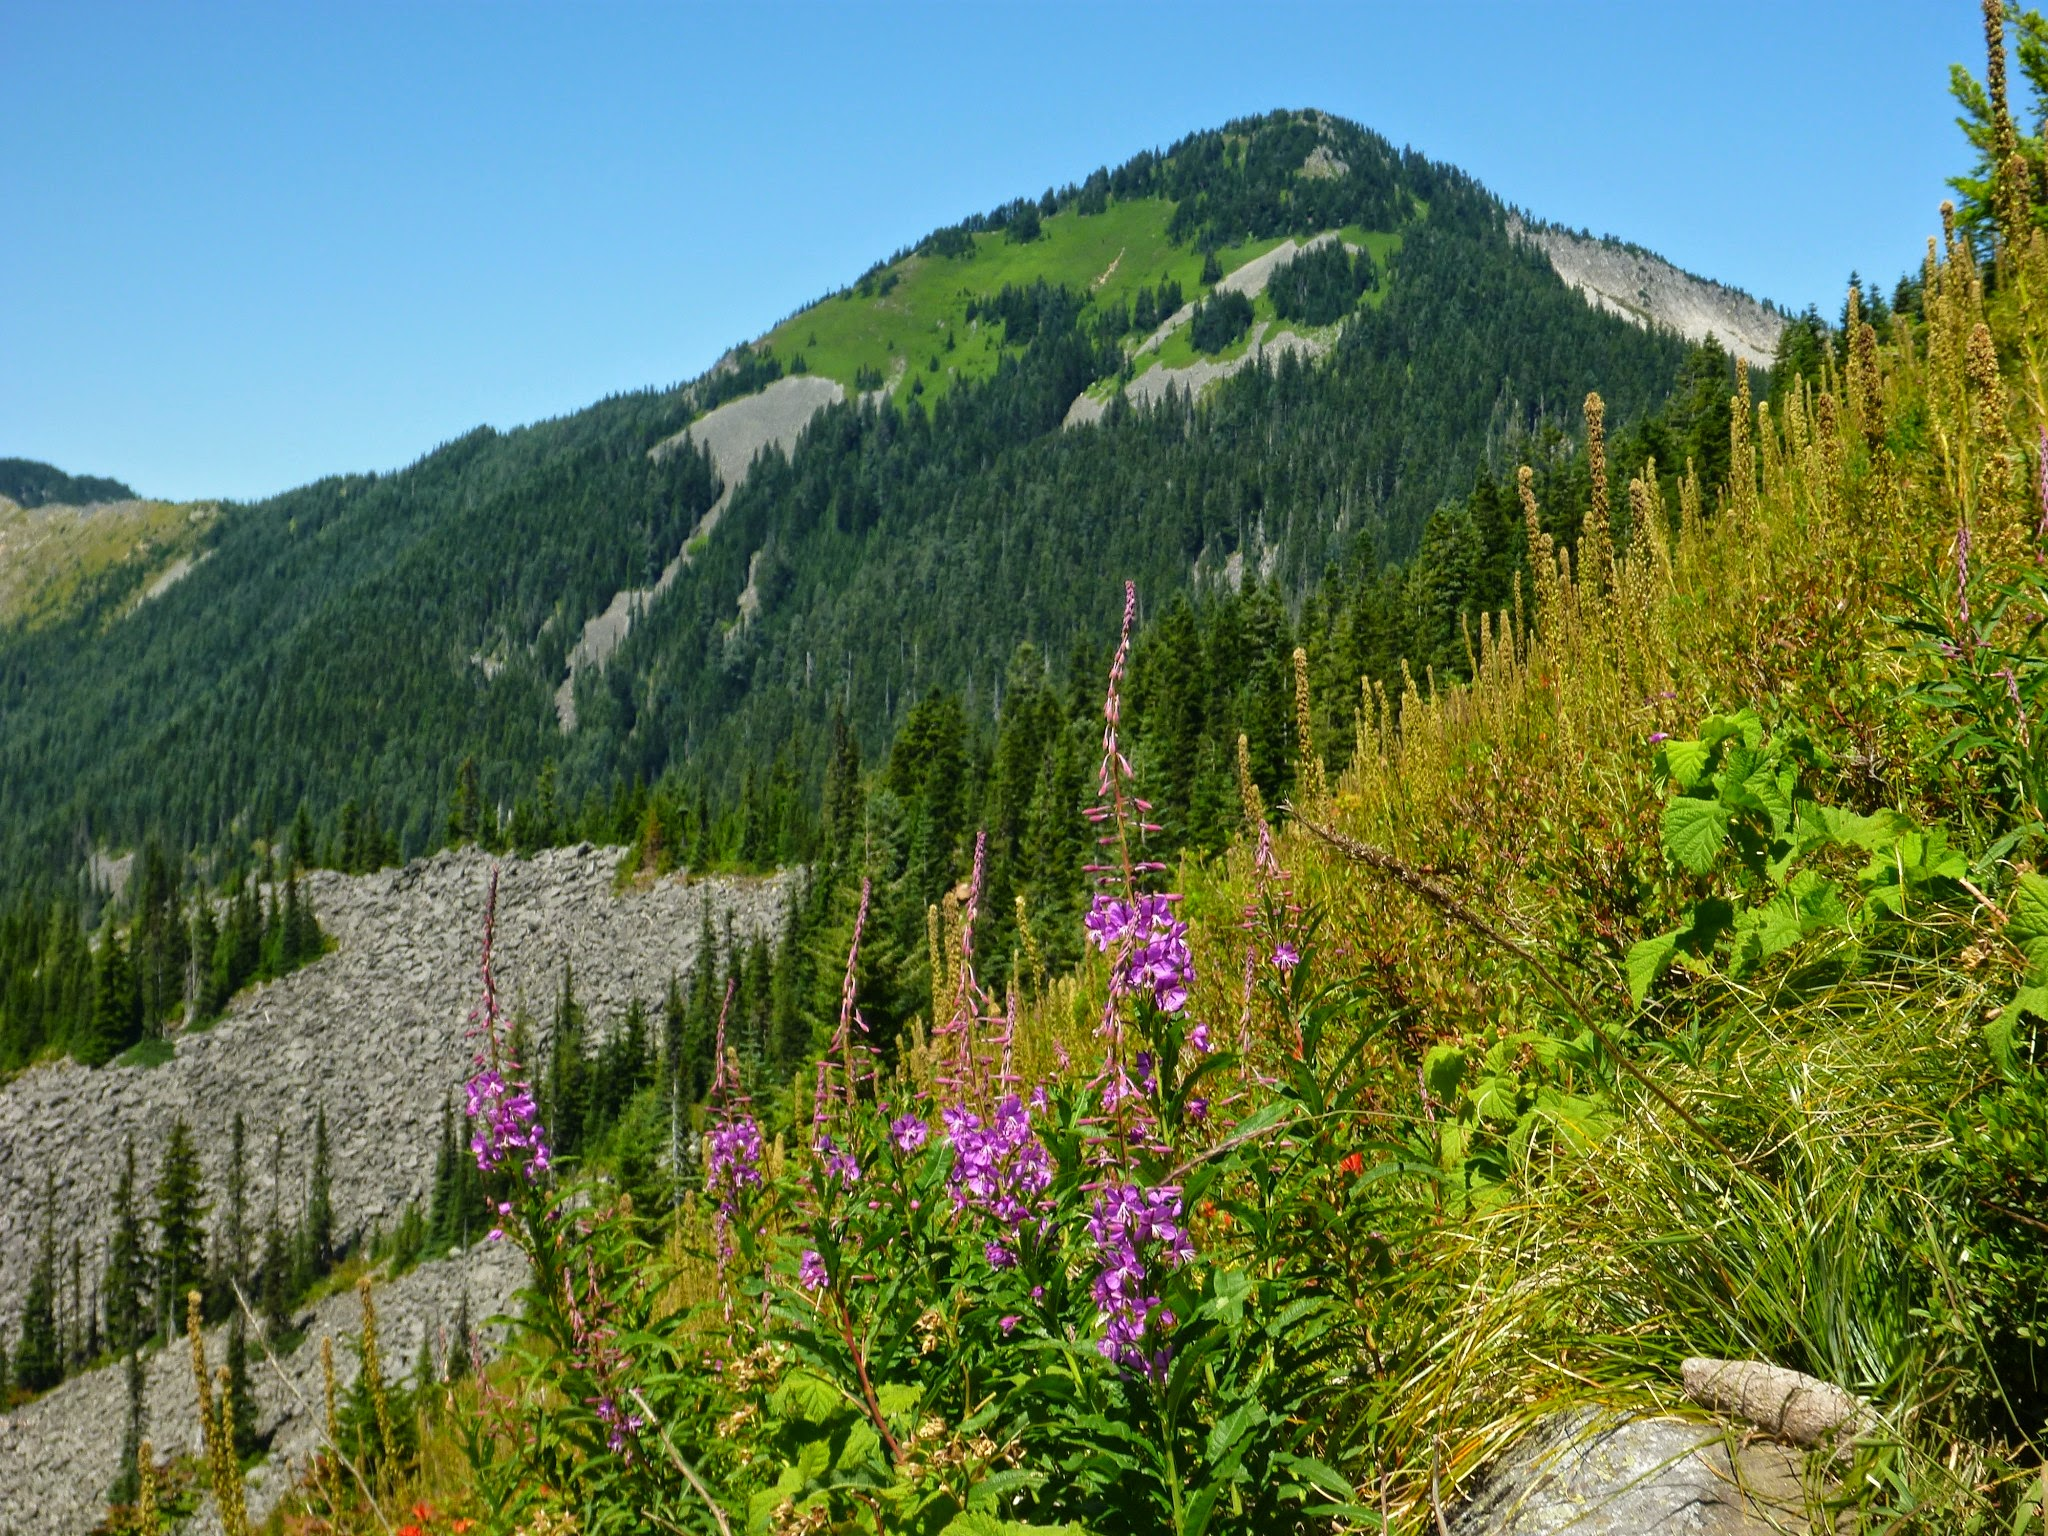 Wildflowers and grass in the foreground, with a distant forested mountain on a sunny day on the Bandera Mountain hike